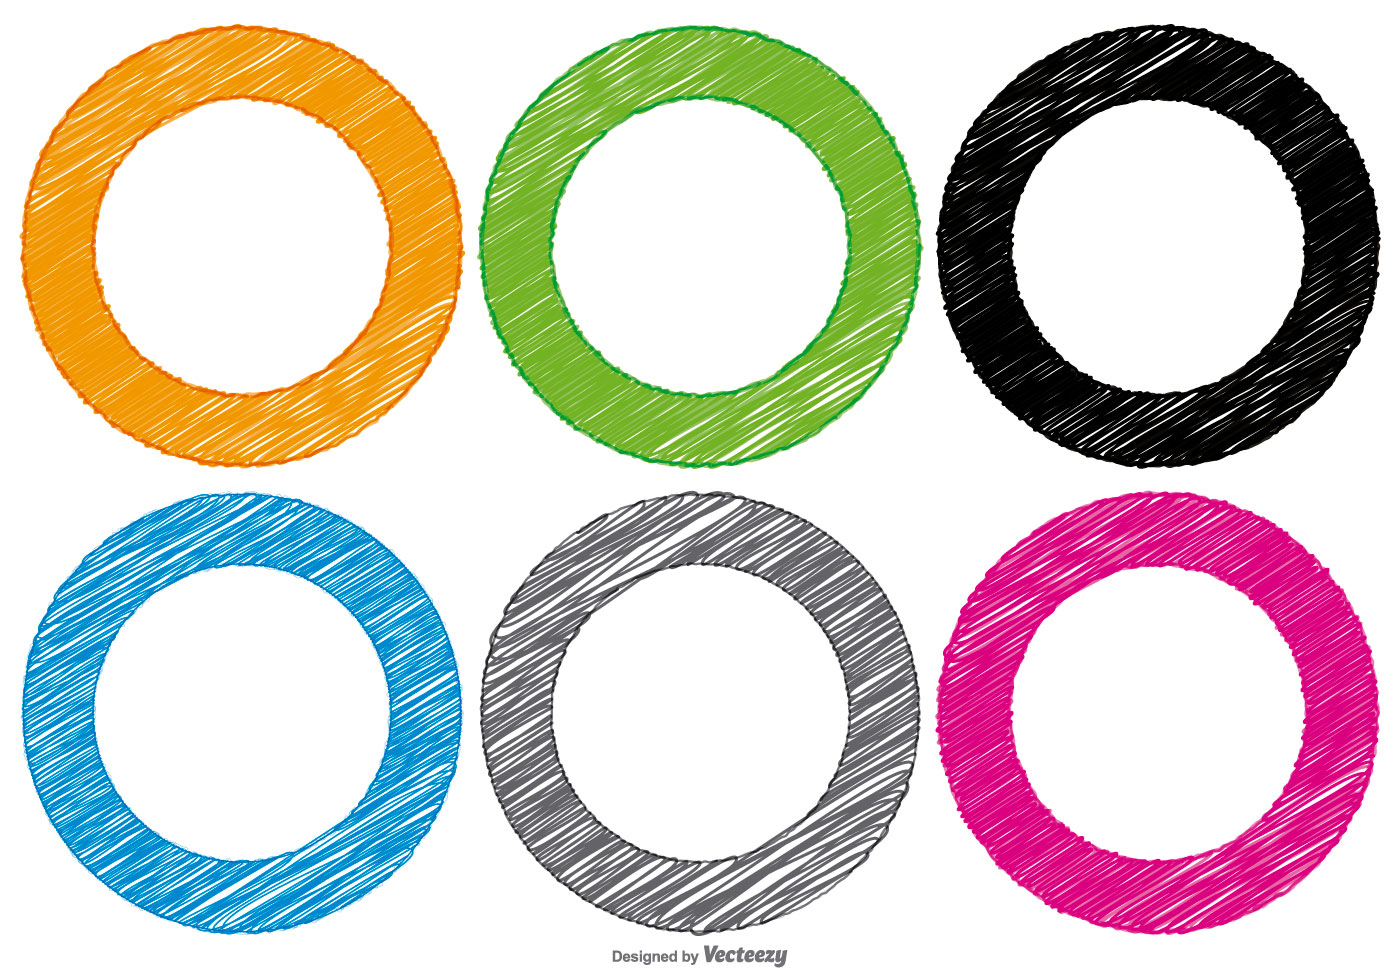 Scribble Style Circle Shapes